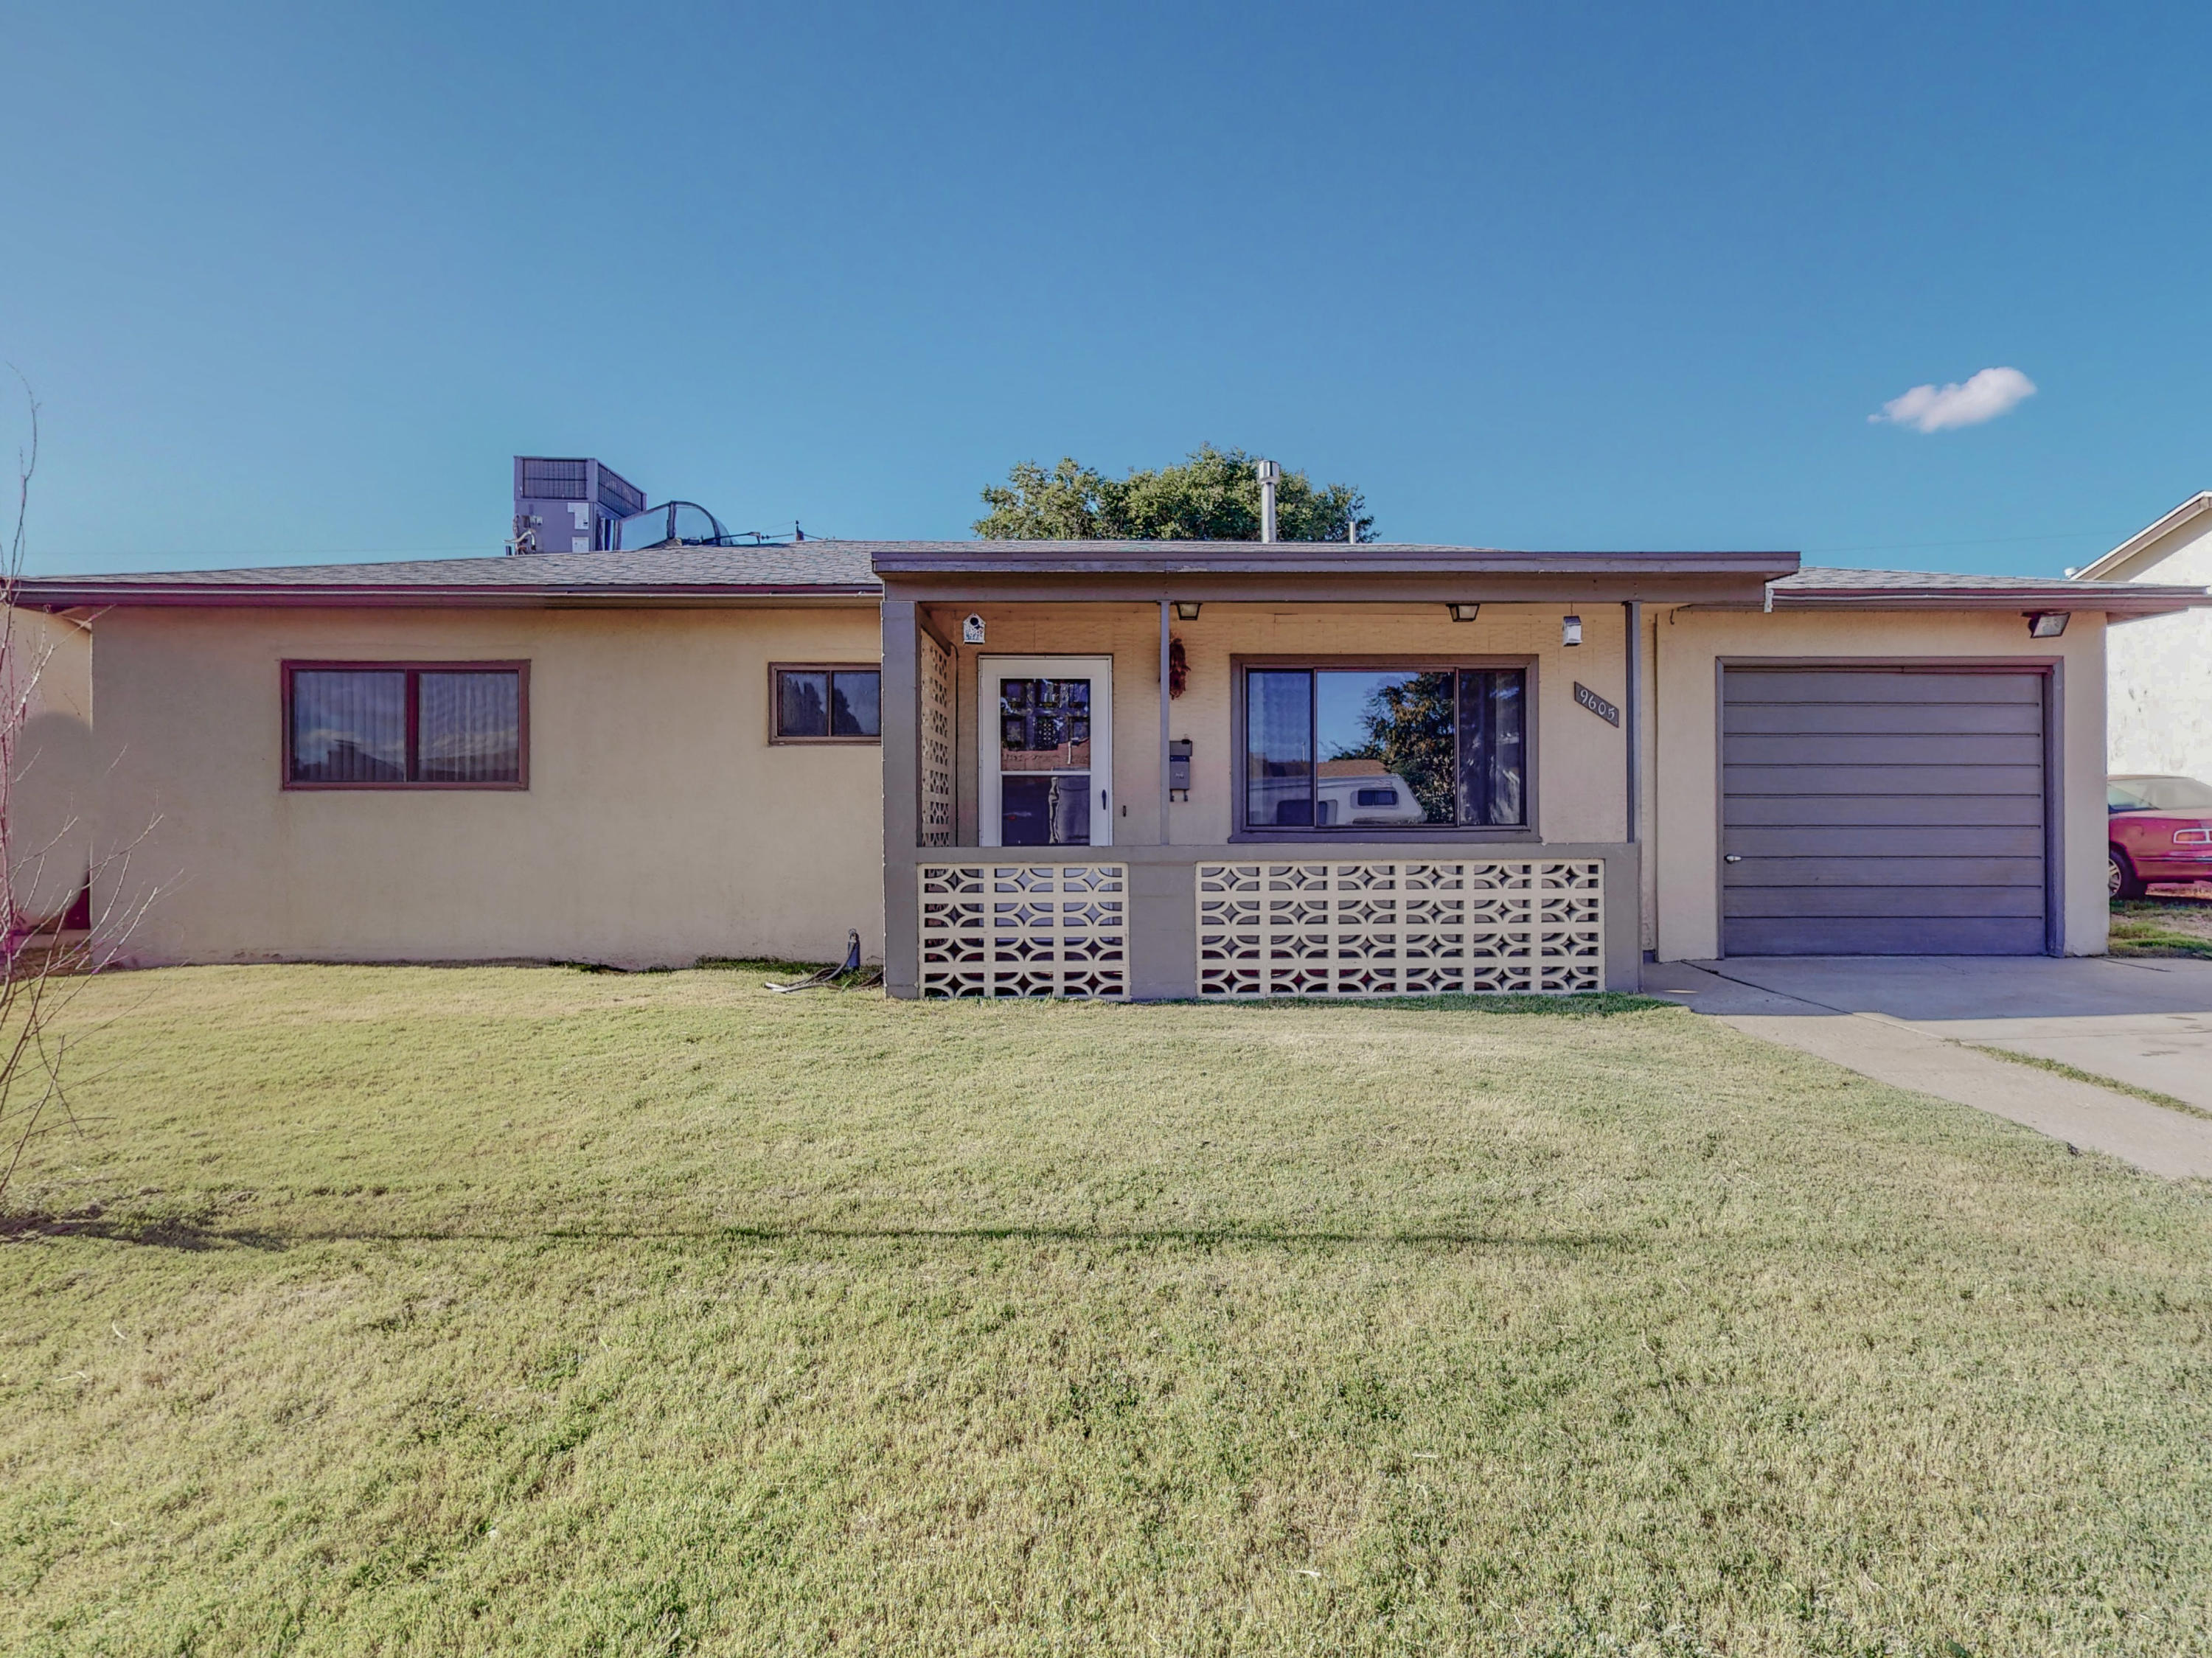 Welcome to this wonderful home located in the Northeast heights. Home includes 3 bedrooms and 2 bathrooms. Big backyard with backyard access. Newer roof 2016, new windows 2017, new refrigerated air unit 2021. Schedule your showing today.